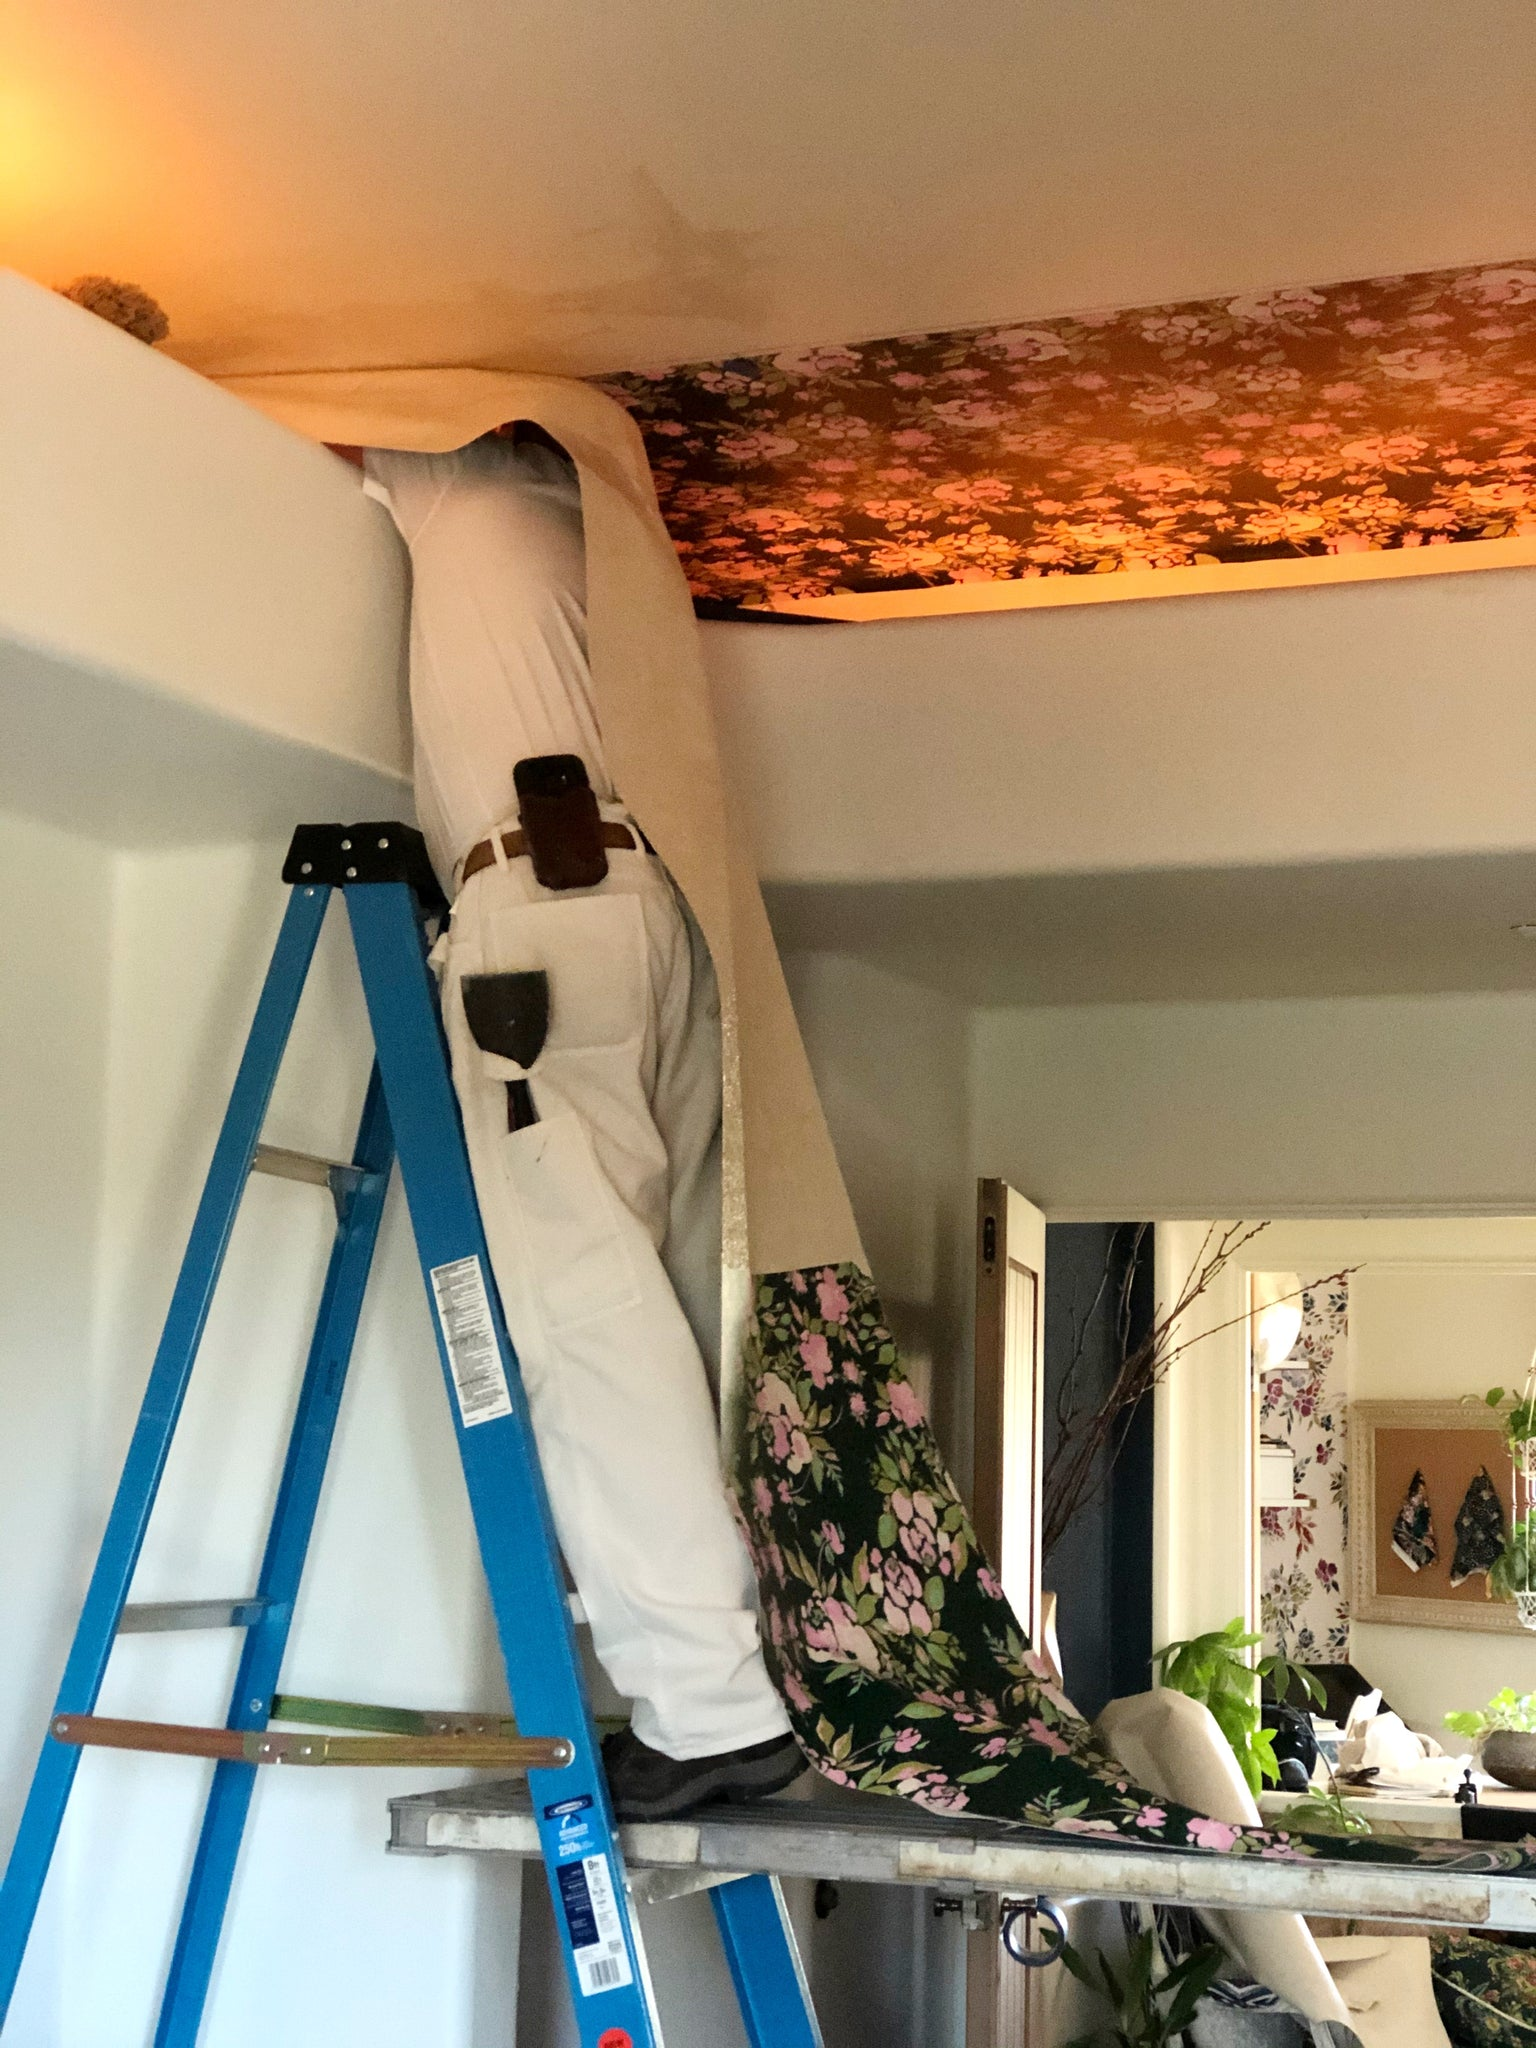 wallpaper being installed